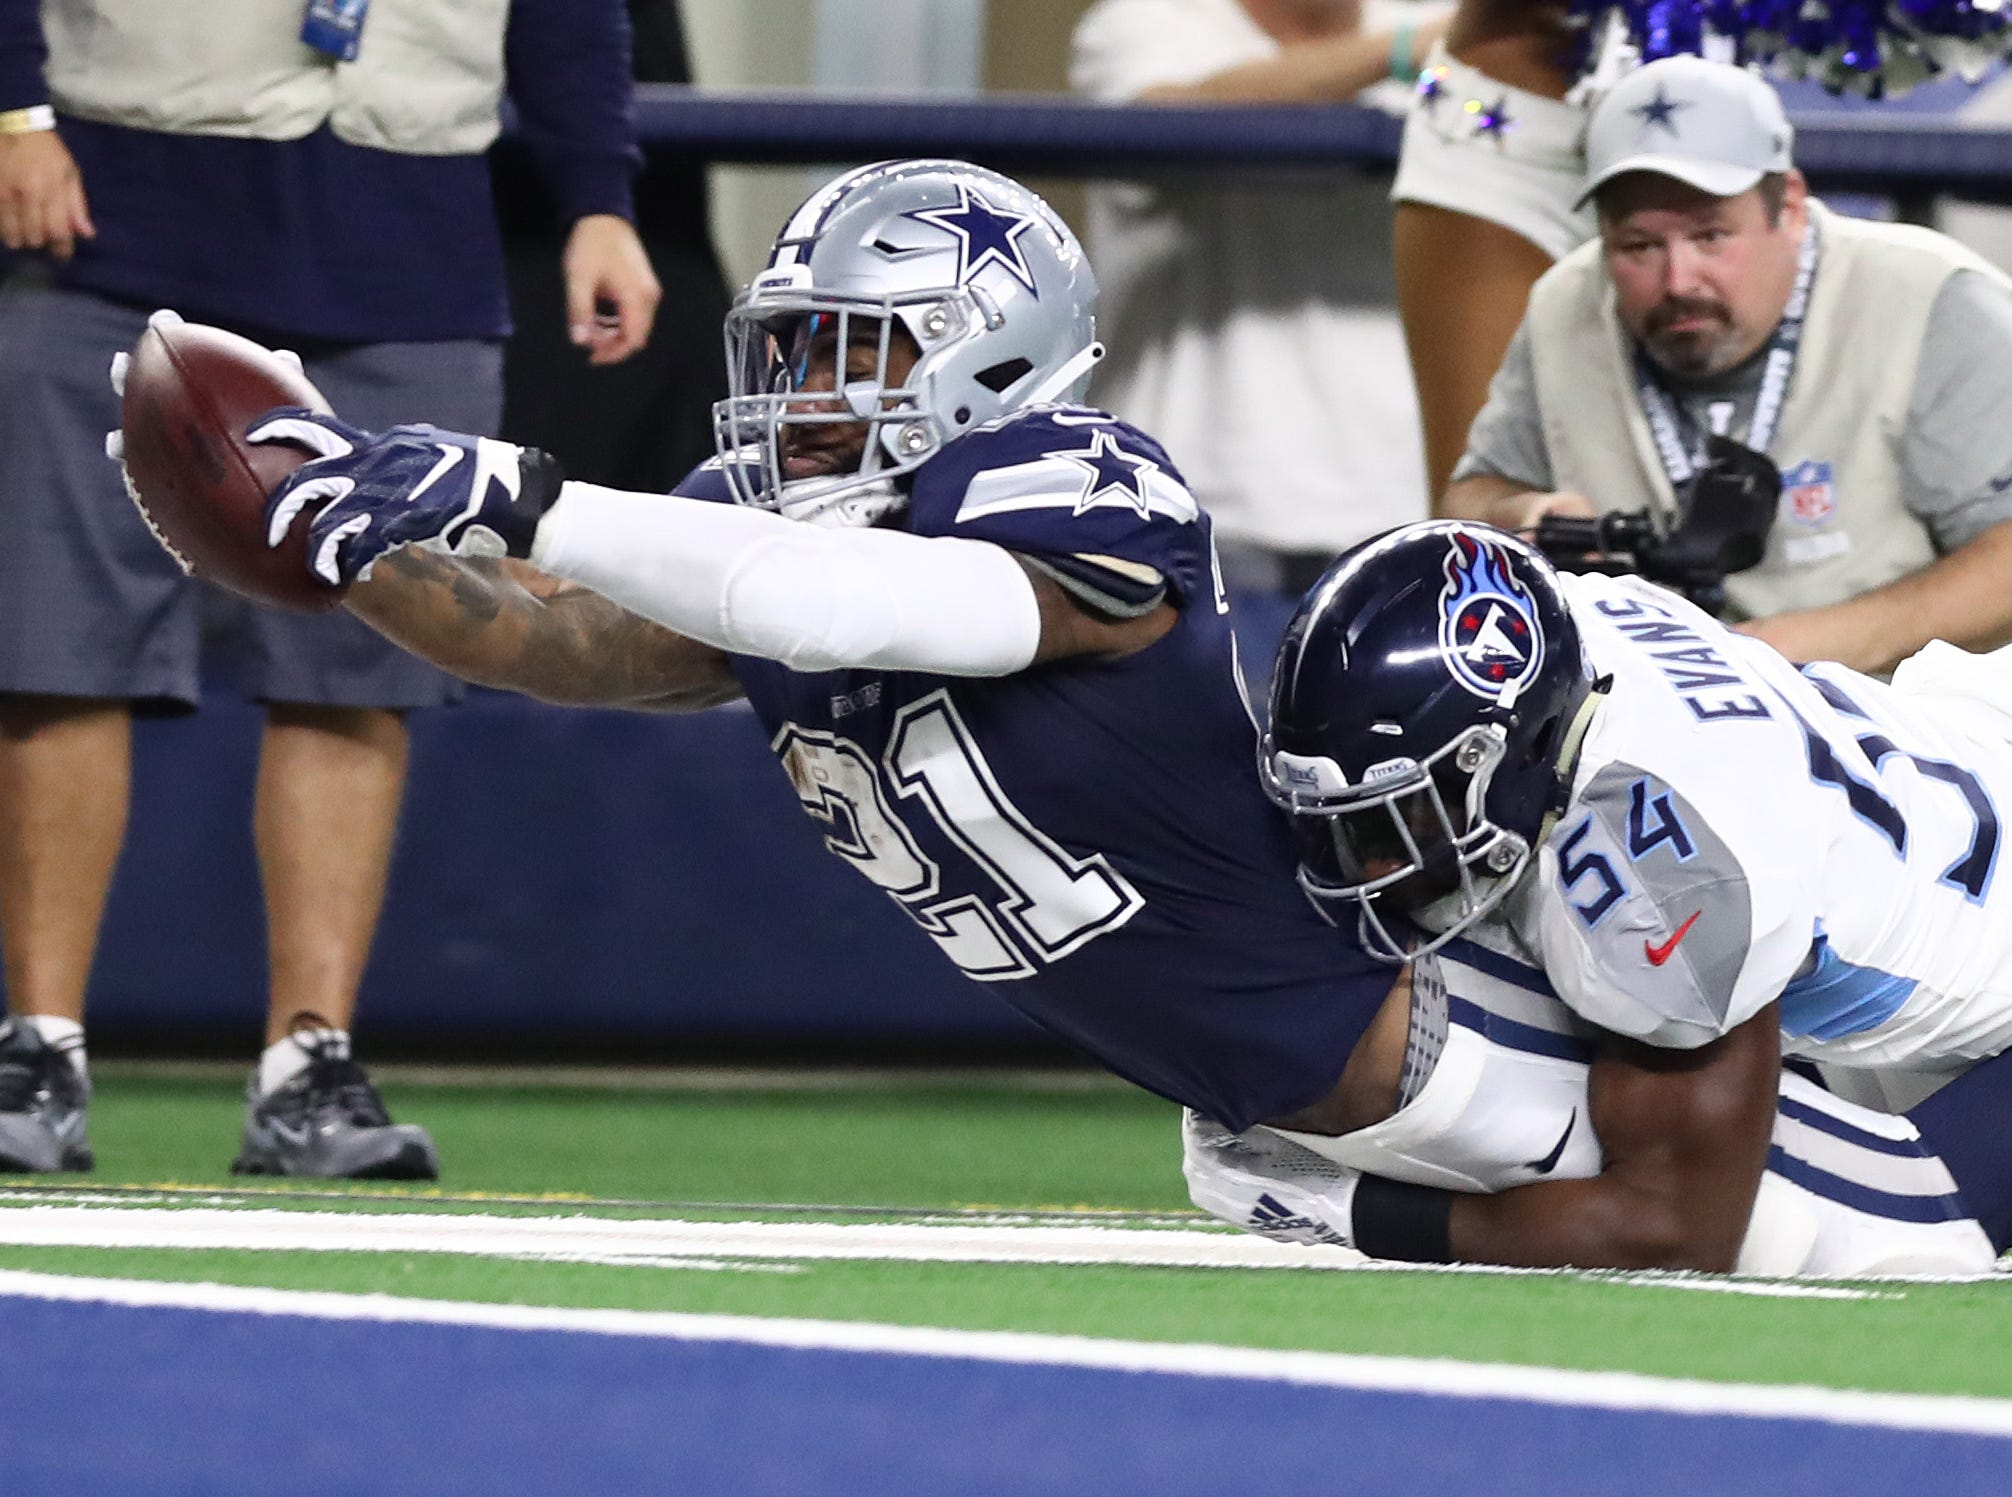 Nov 5, 2018; Arlington, TX, USA; Dallas Cowboys running back Ezekiel Elliott (21) dives for the goal line in the first quarter against Tennessee Titans linebacker Rashaan Evans (54) at AT&T Stadium.